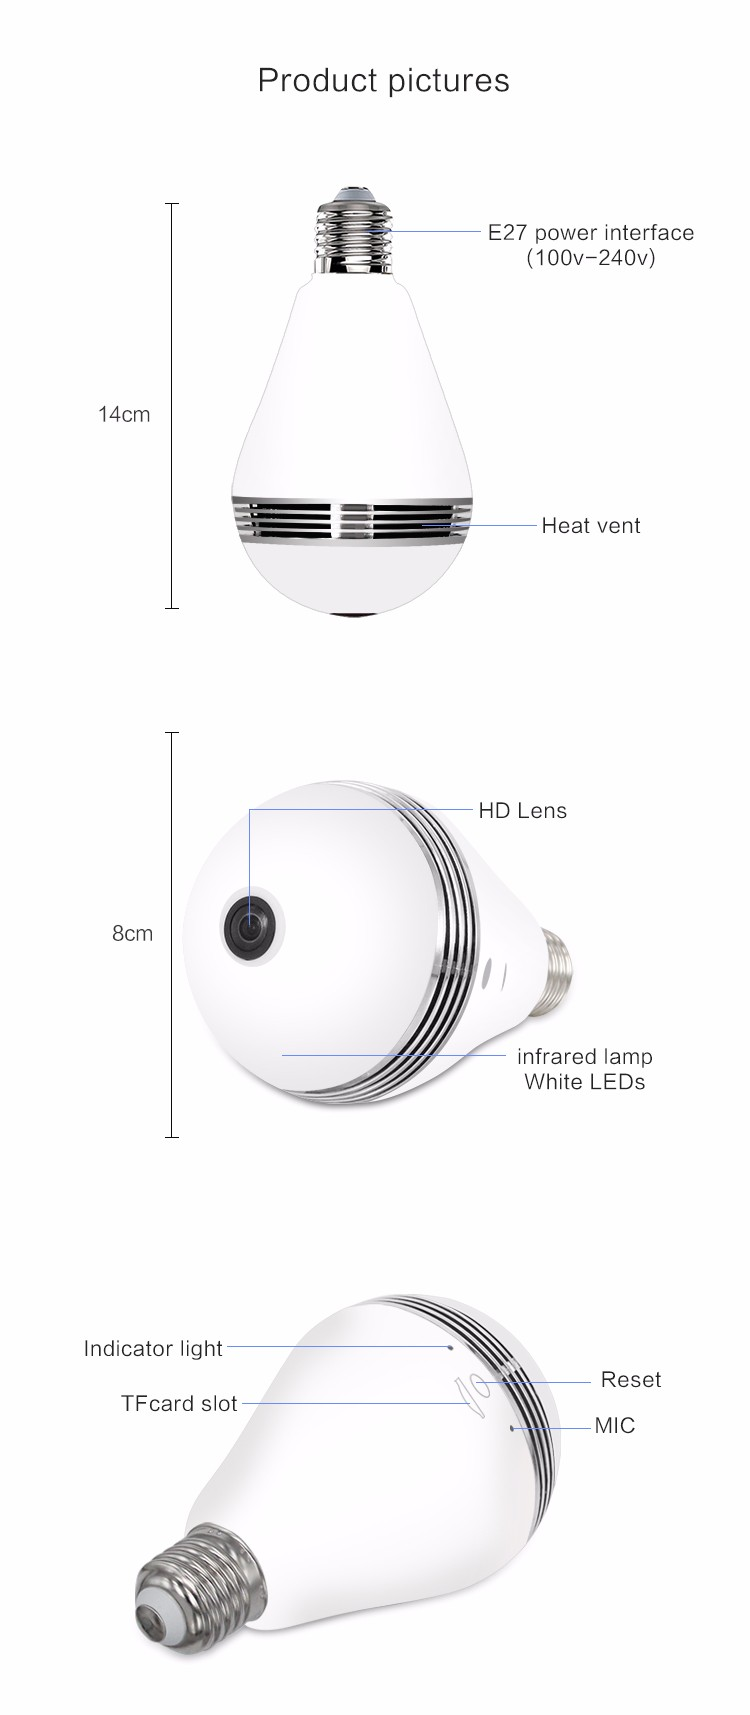 light bulb camera H.264 960p wifi ip camera bulb security surveillance camera XMR-JK43